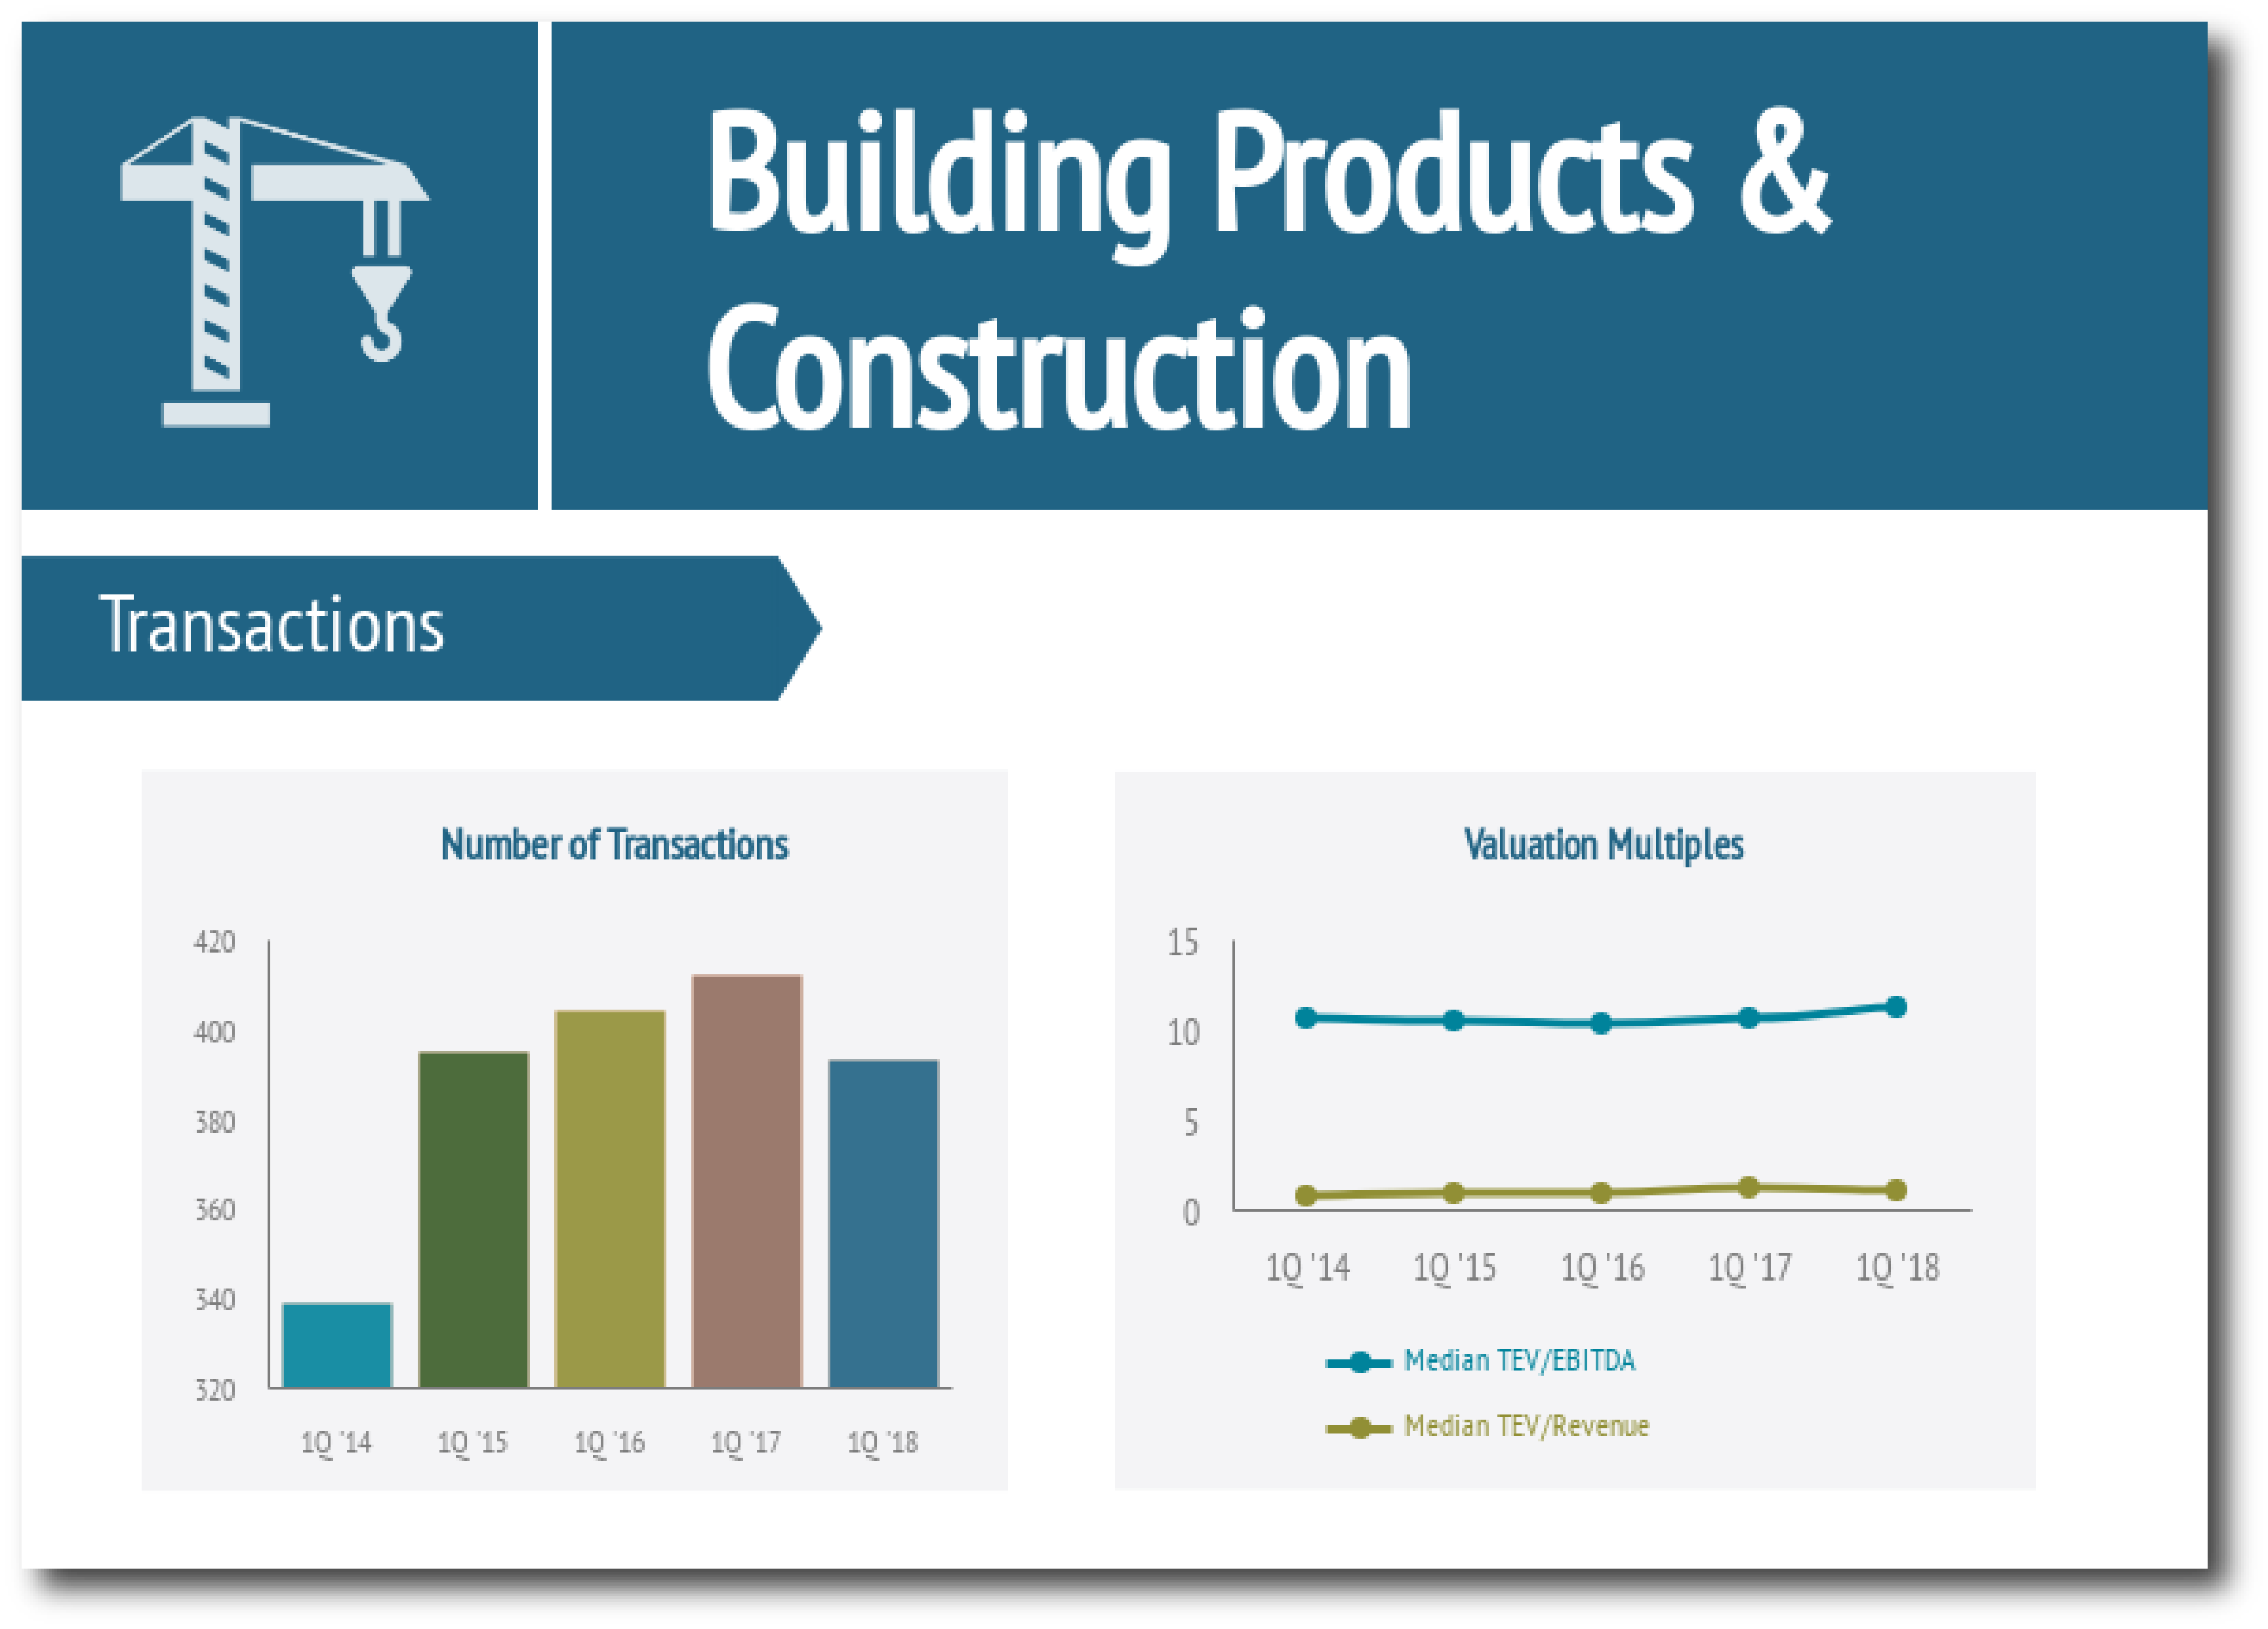 Building Products & Construction